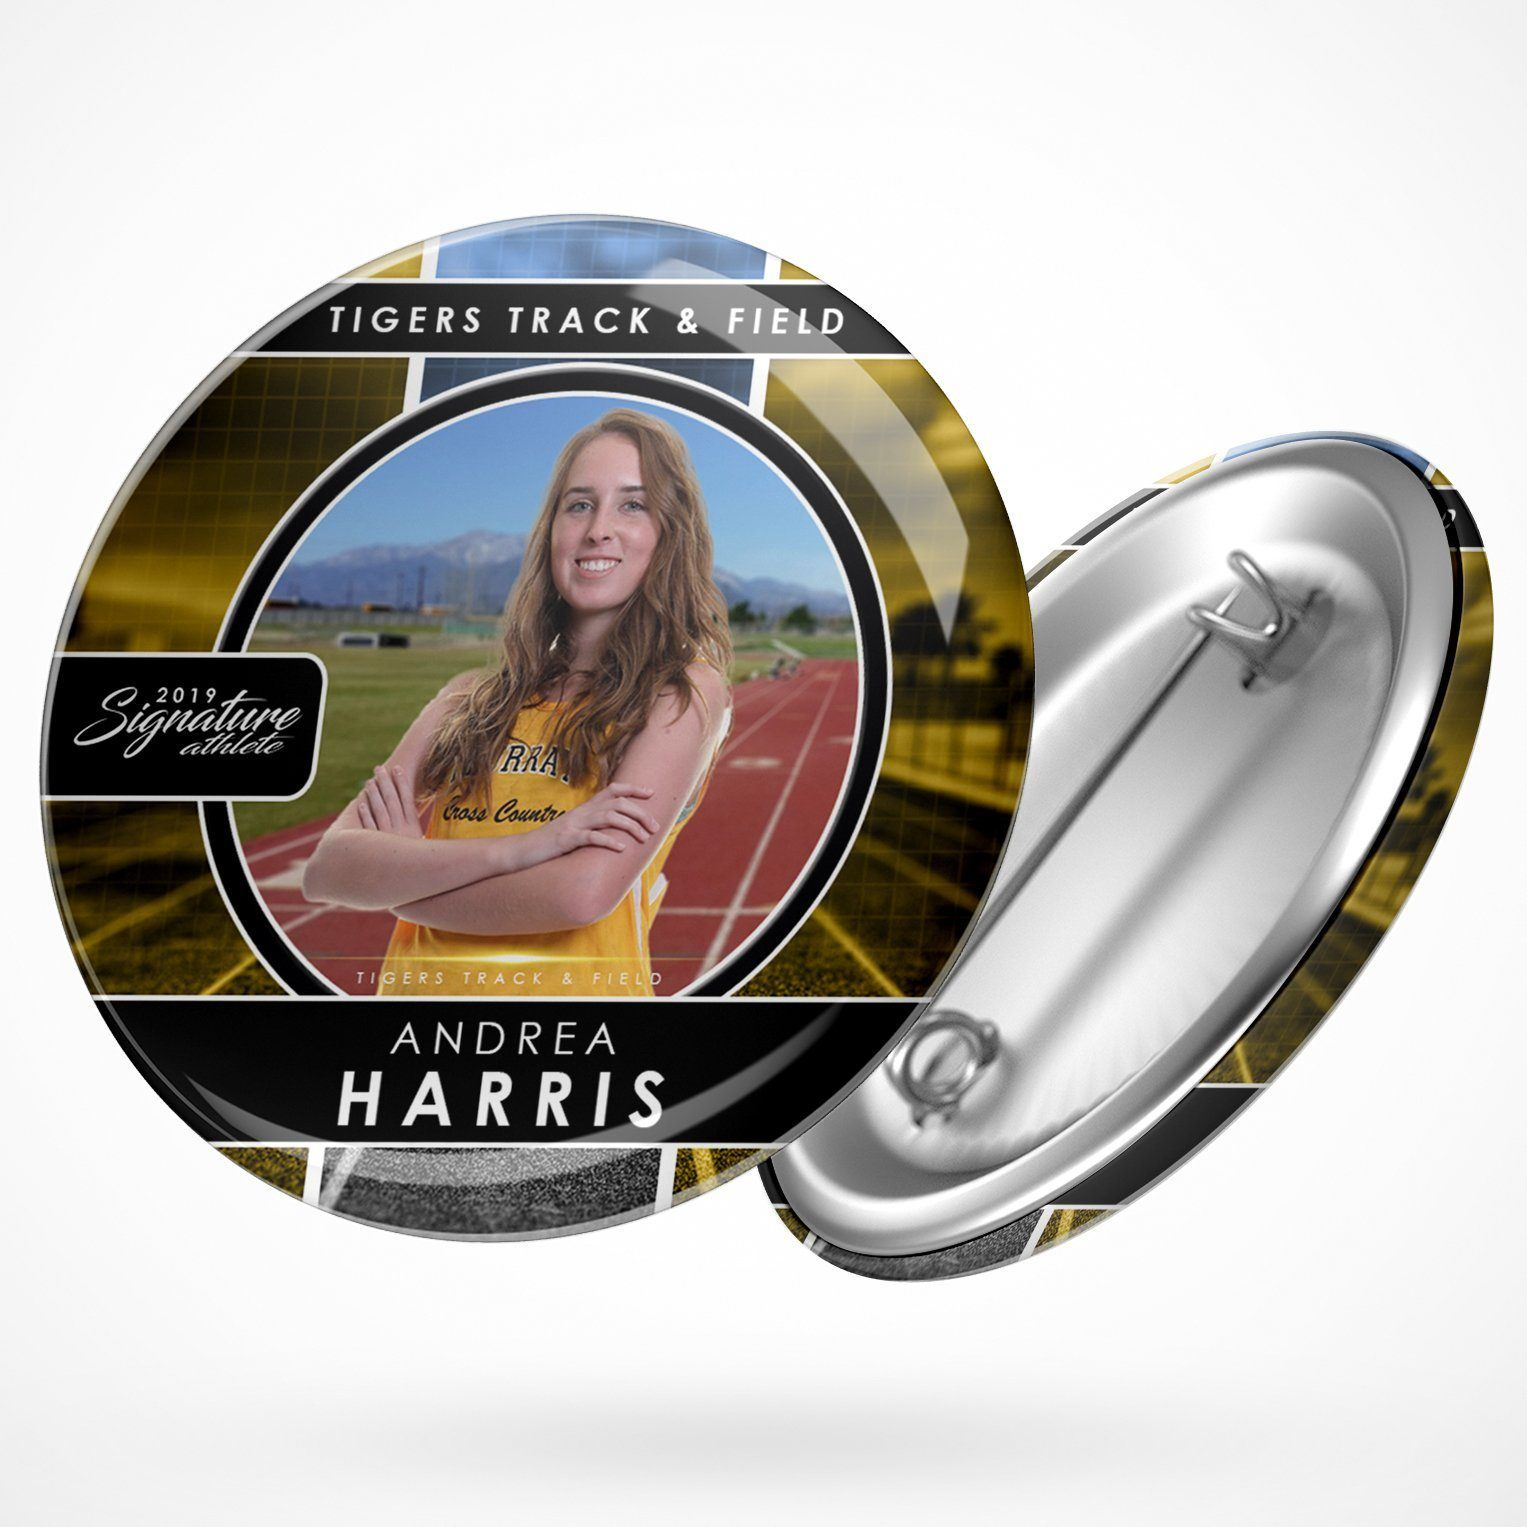 Signature Player - Track & Field - V1 - Drop In Button Template-Photoshop Template - Photo Solutions